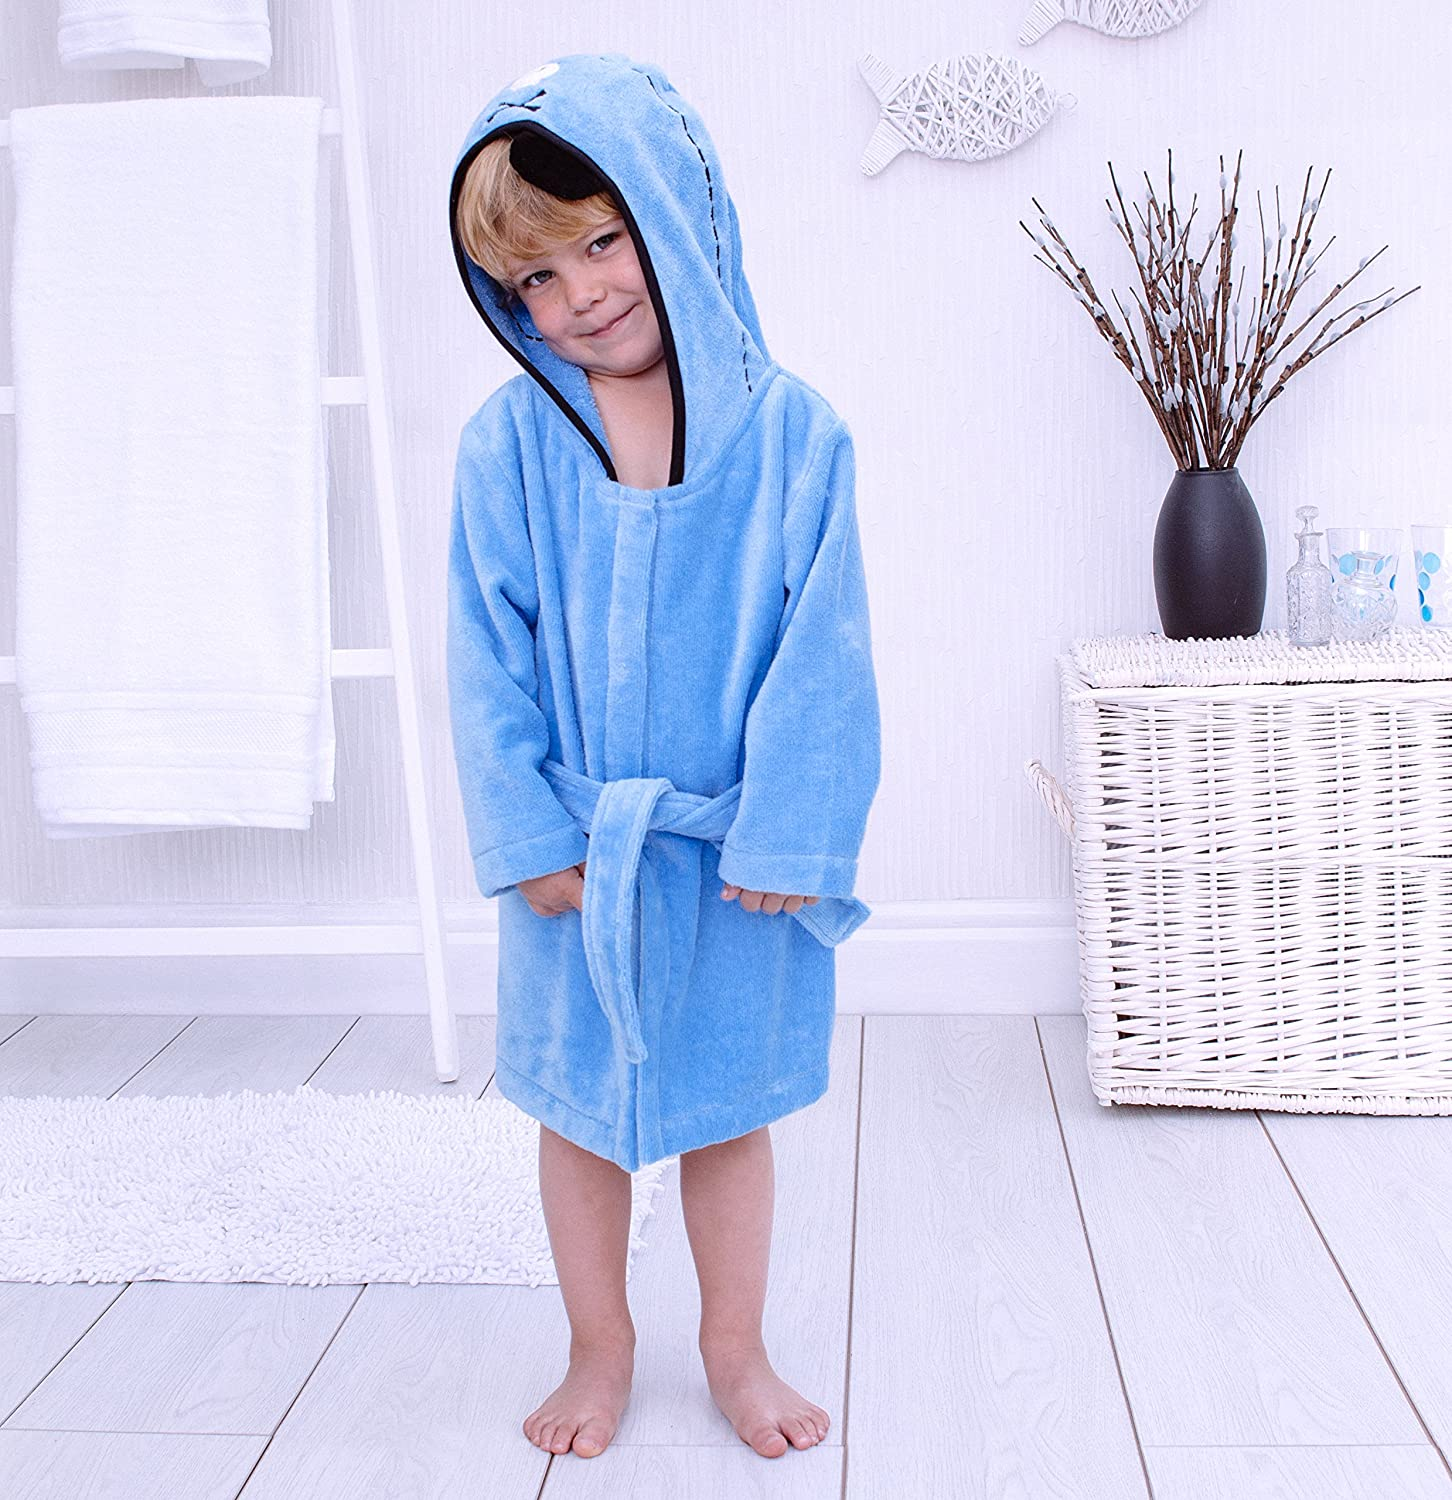 Bathing Bunnies Hooded Pirate Bath Robe Cotton for 1-3 Year Old Surrey AT Company Ltd 760439PTR